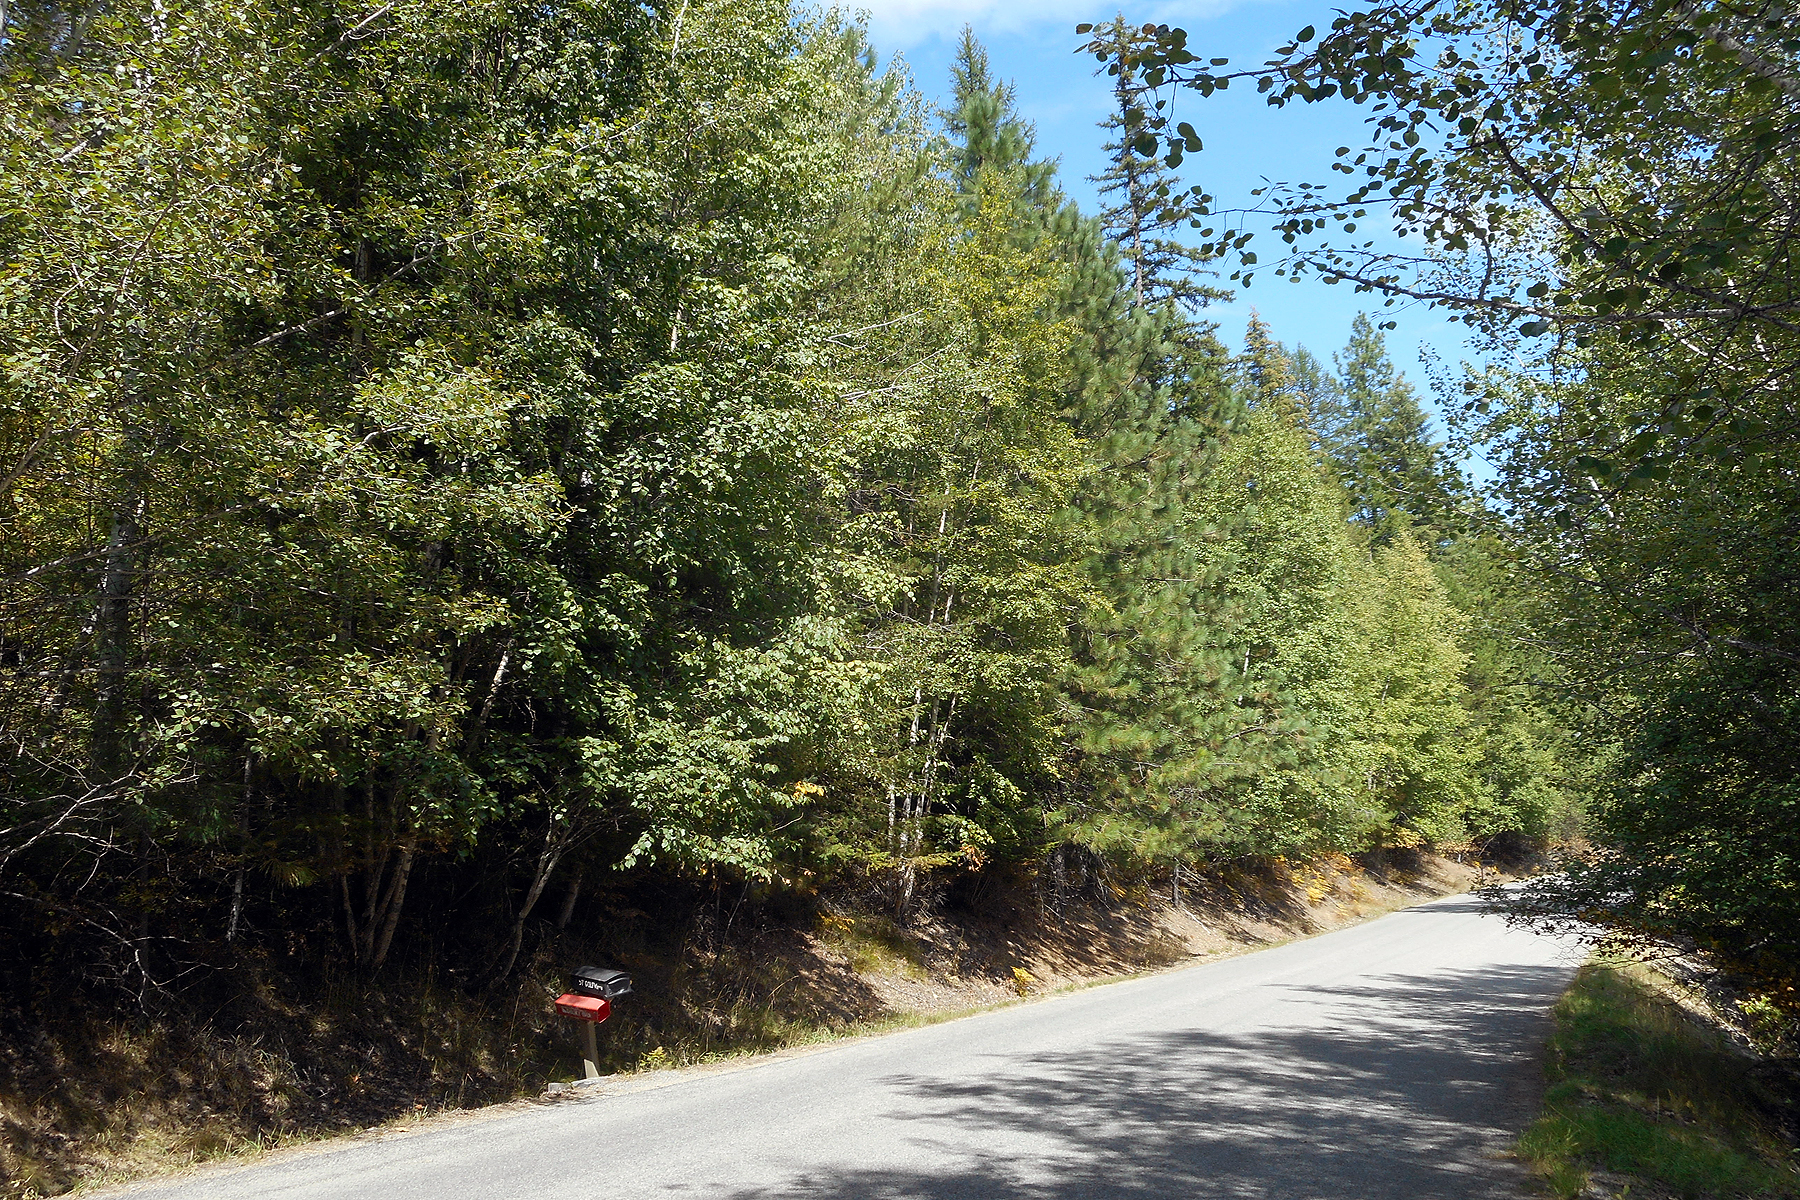 Land for Sale at 3/4 acre across the street from Idaho Club NNA Lot 9 Lower Pack River, Sandpoint, Idaho, 83864 United States